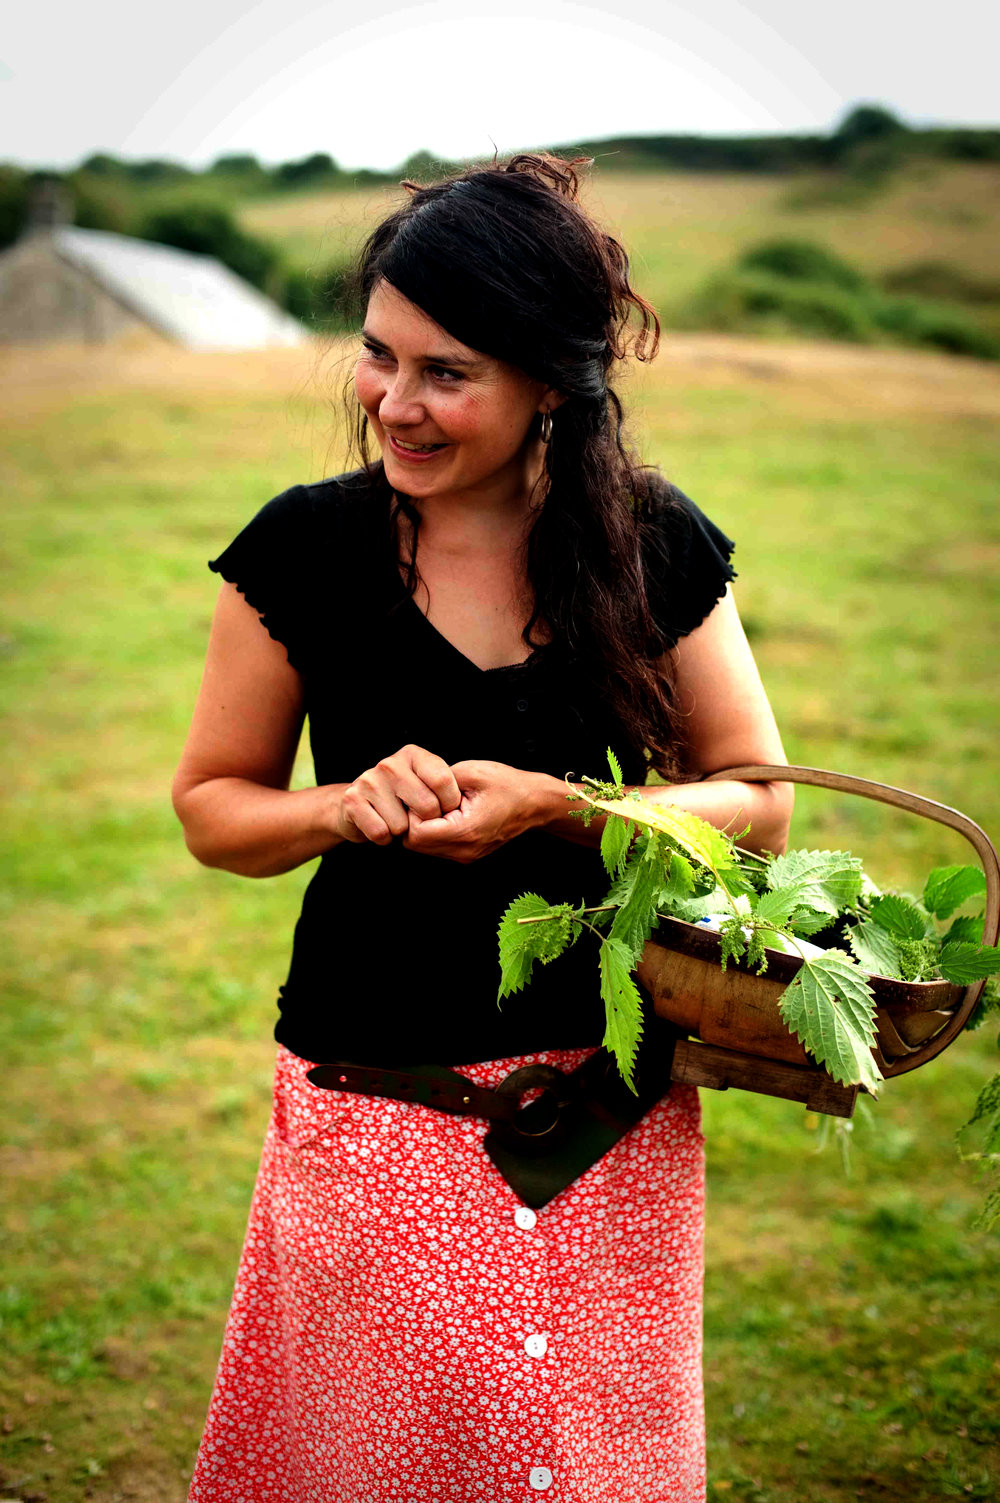 Jade Mellor - Jade Mellor has been a professional forager for over a decade, collecting wild food from the beautiful hedgerows, woodlands and coast of West Wales.  Picking what is seasonally abundant, with care and sensitivity, leaving plenty to go to seed and for the birds. She is inspired by the landscape, the changing seasons and the wild bounty of blossoms, leaves,fruits and seaweeds, which she uses to create delicious and unique food.  Jade runs seasonal walks and workshops, teaching others how to identify, gather and use wild food, with a focus on eating!